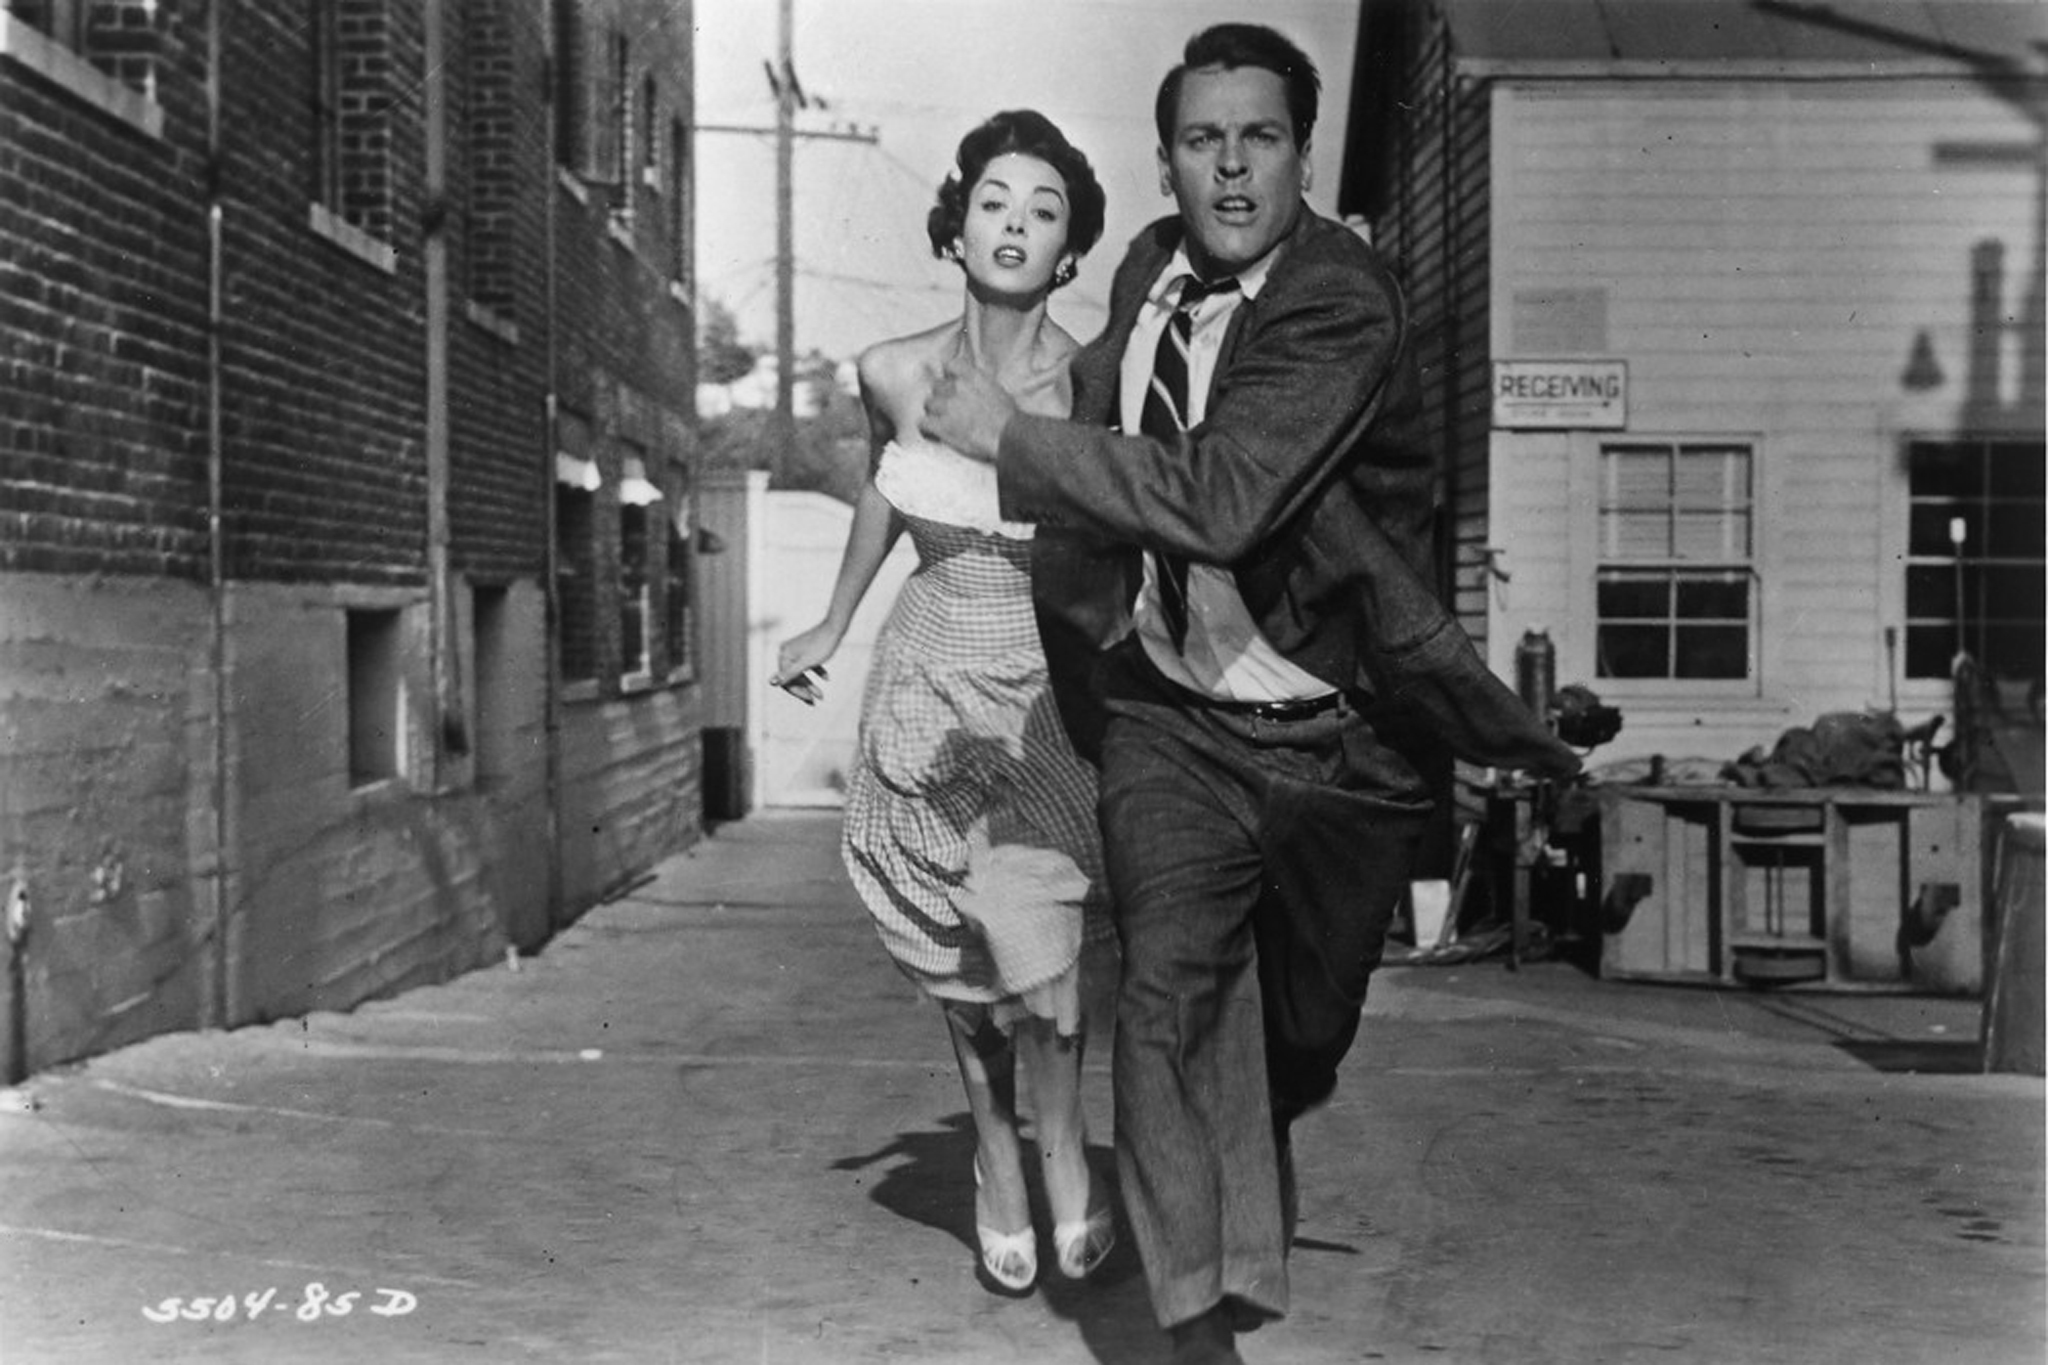 The 100 best horror films, horror movies, Invasion of the Body Snatchers